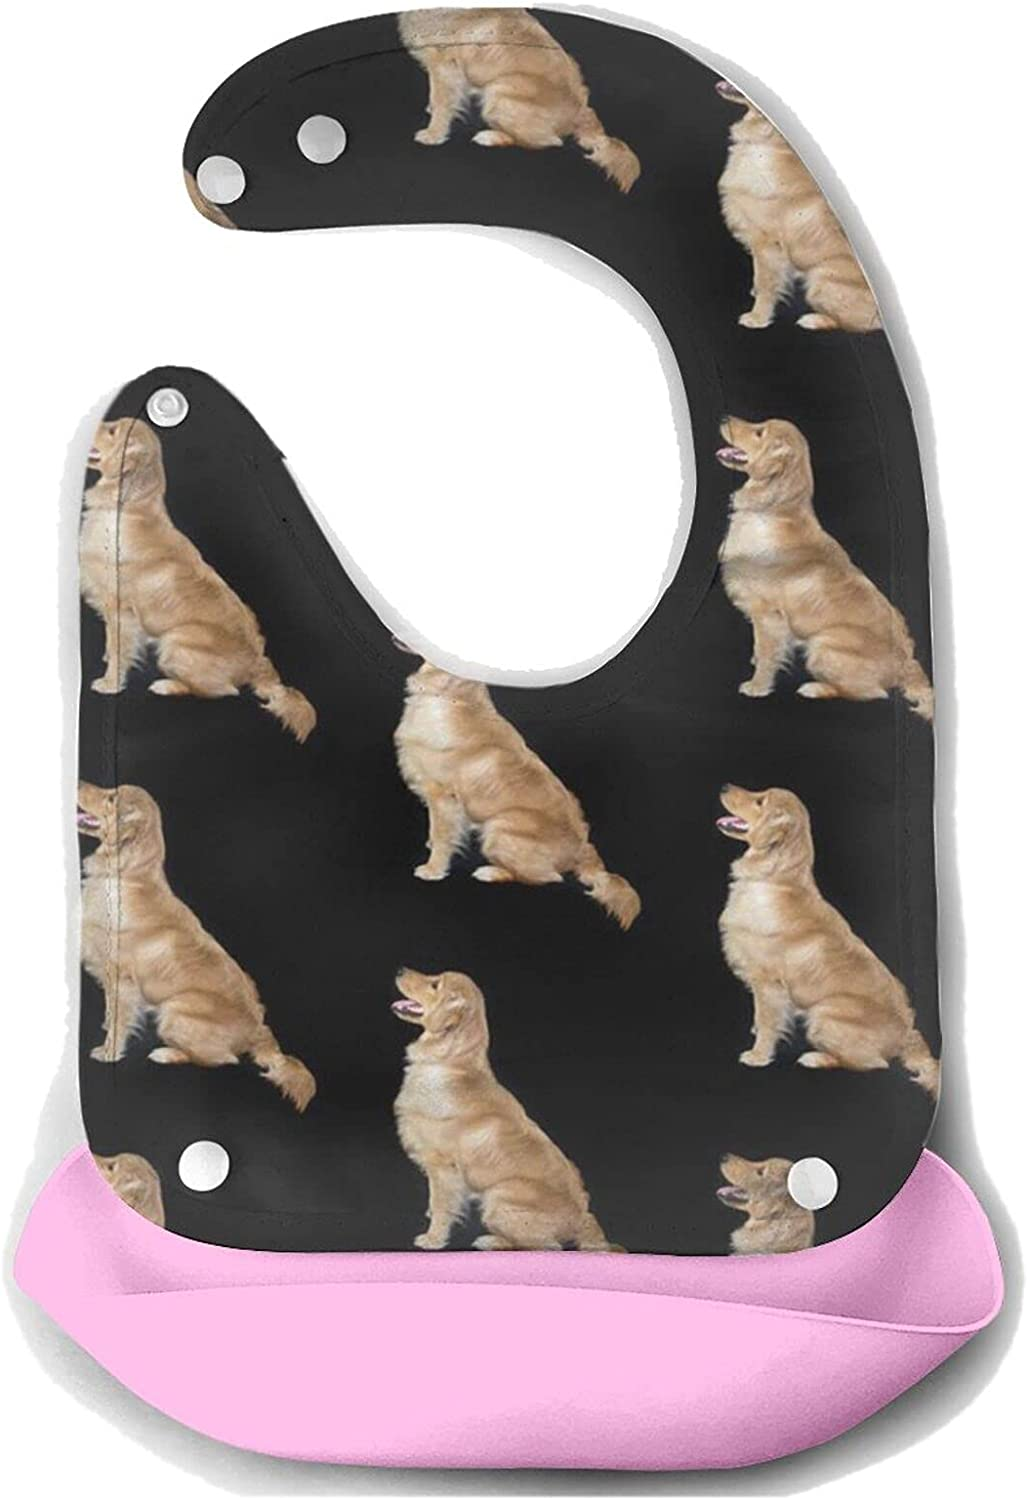 Courier shipping free shipping NiYoung Super Silicone Bib - Golden Mouth 55% OFF Baby Retriever To Dogs